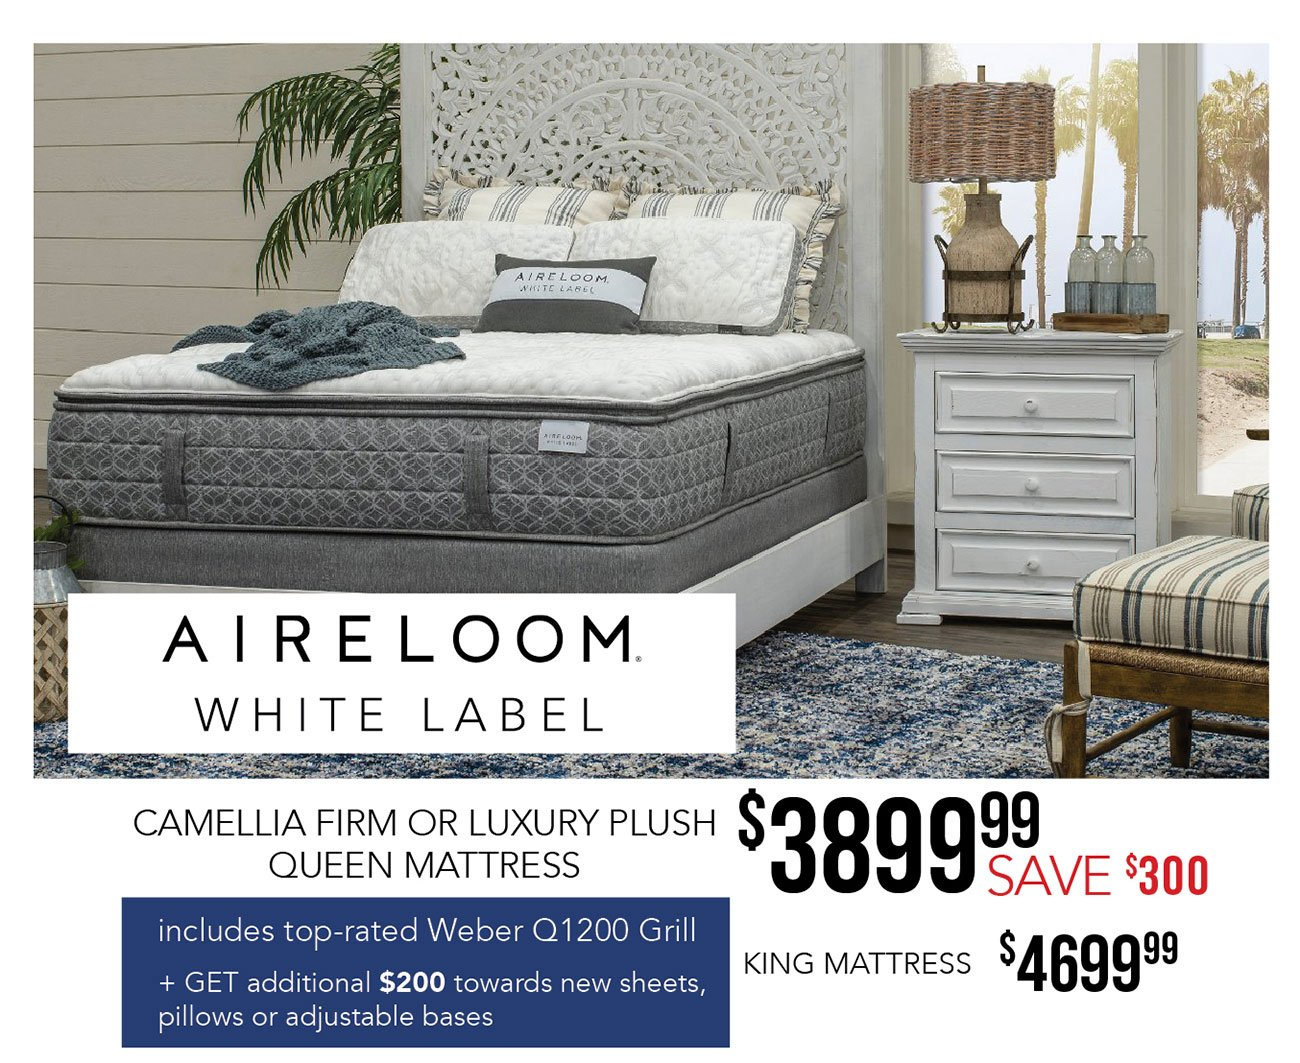 Aireloom-camellia-firm-queen-mattress